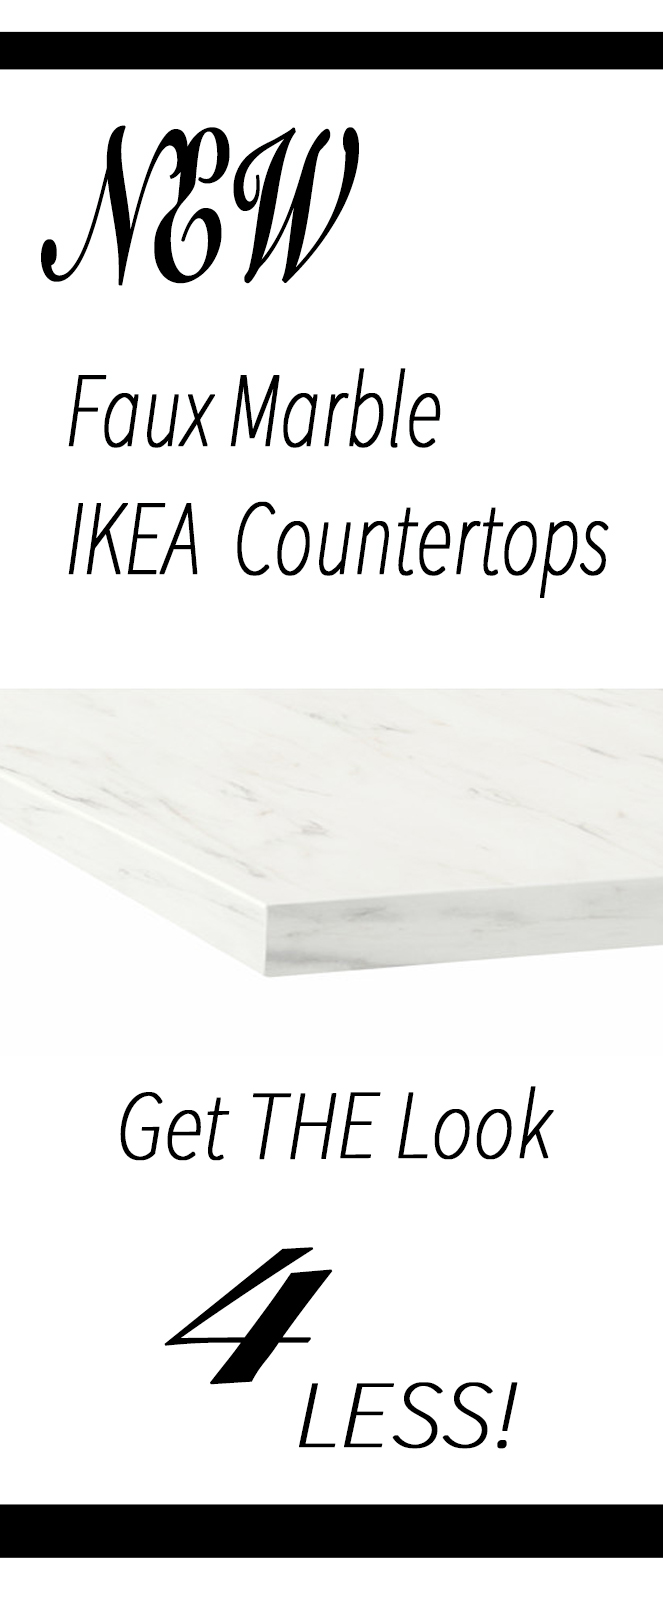 `1NEW Faux Marble Ikea countertops